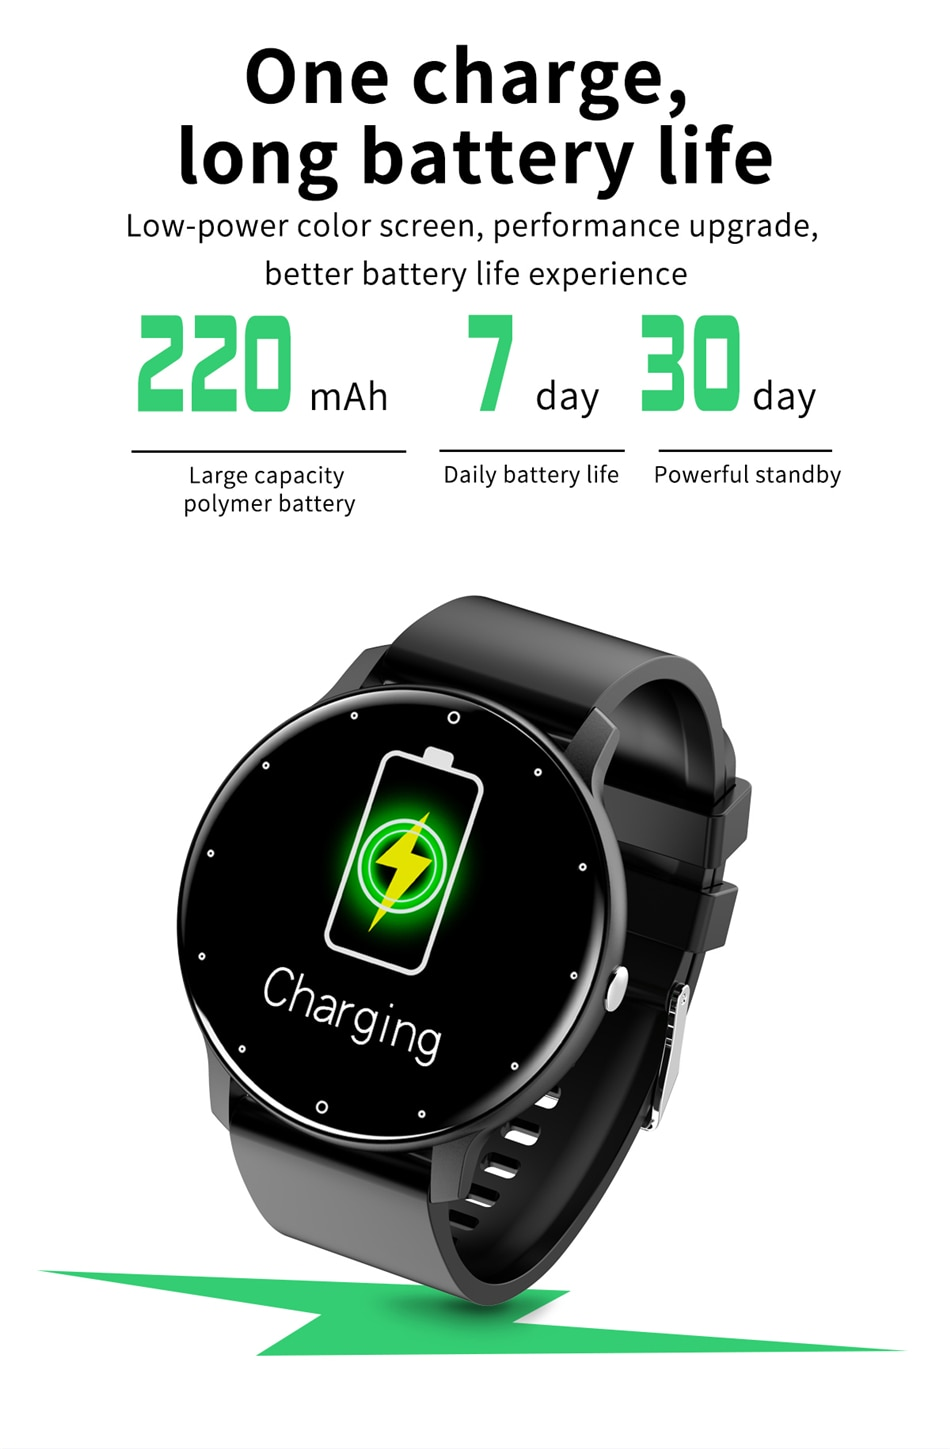 H87d282fb46e1470b84fbae2aca956119j - LIGE 2021 New Smart Watch Men Full Touch Screen Sport Fitness Watch IP67 Waterproof Bluetooth For Android ios smartwatch Men box